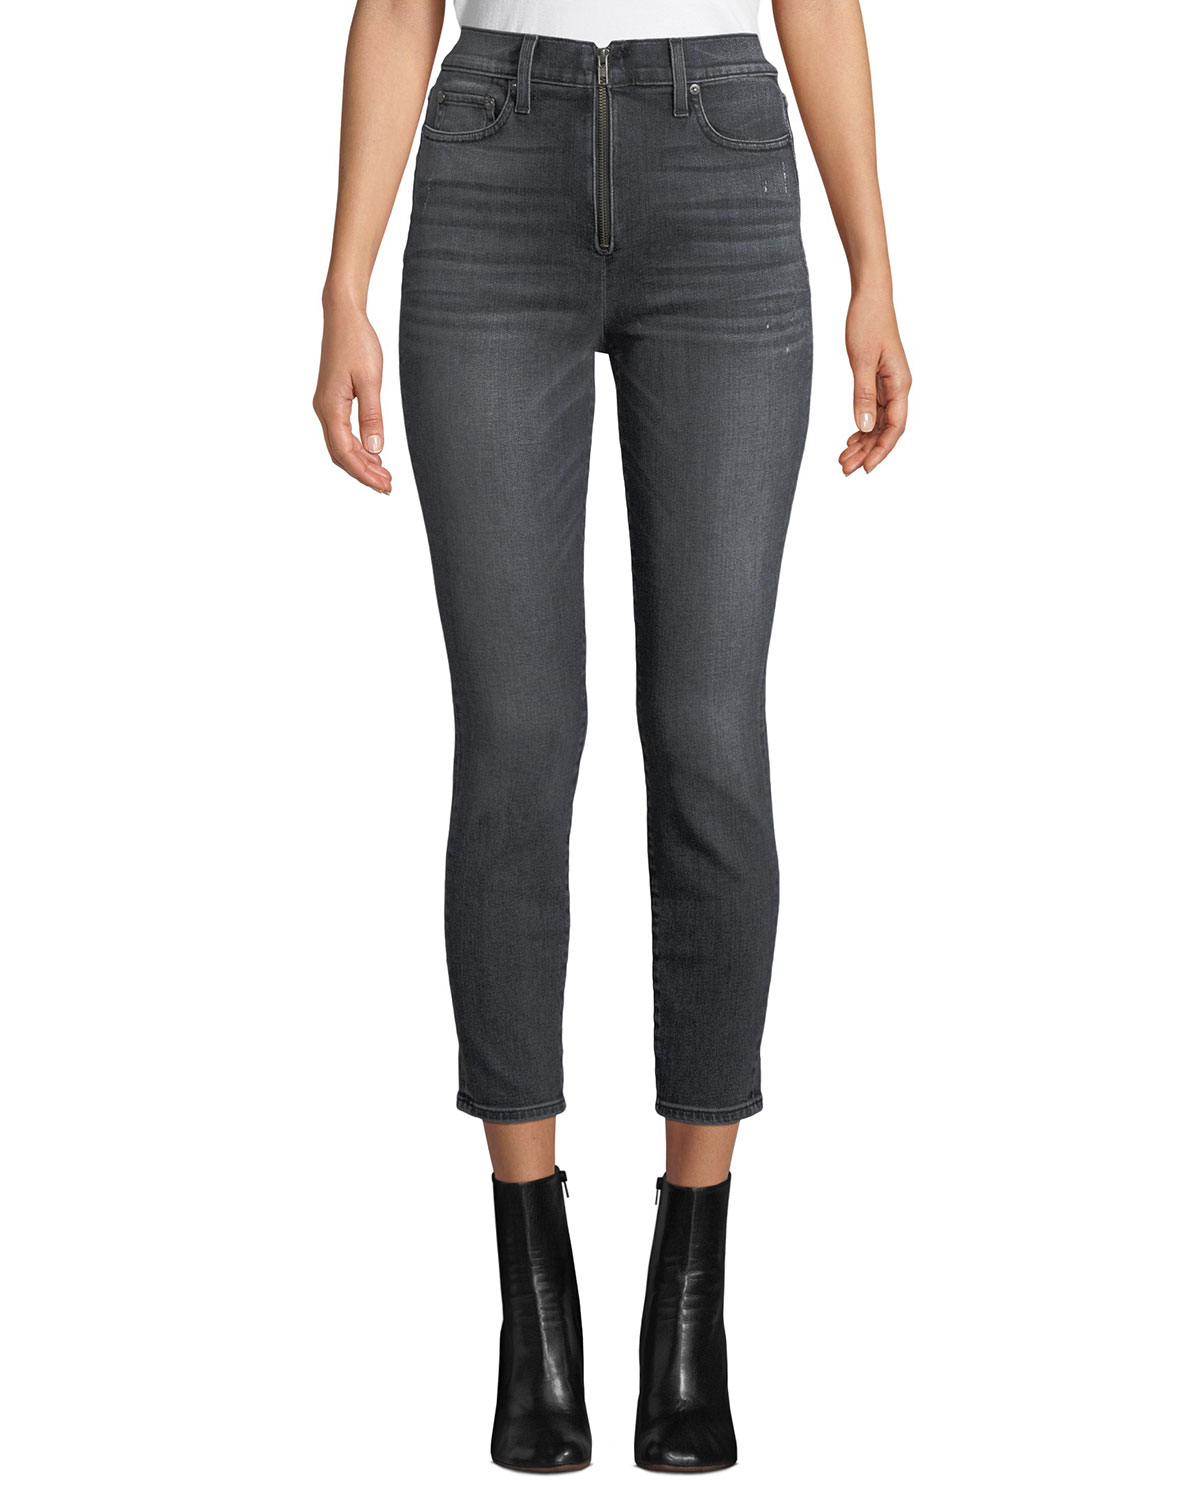 801858f66e ALICE + OLIVIA JEANSGood High-Rise Ankle Skinny Jeans with Exposed Zip Fly